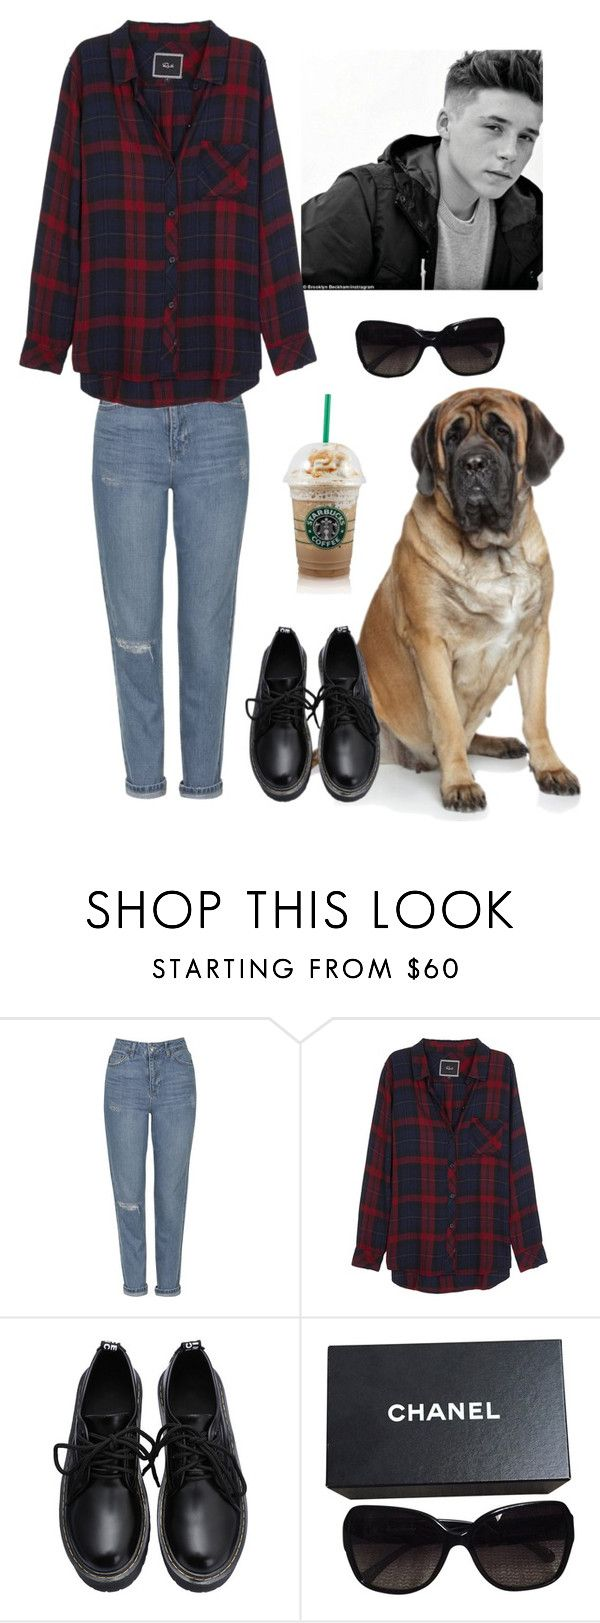 """Sans titre #1556"" by noonewilleverknow ❤ liked on Polyvore featuring Topshop, Rails and Chanel"